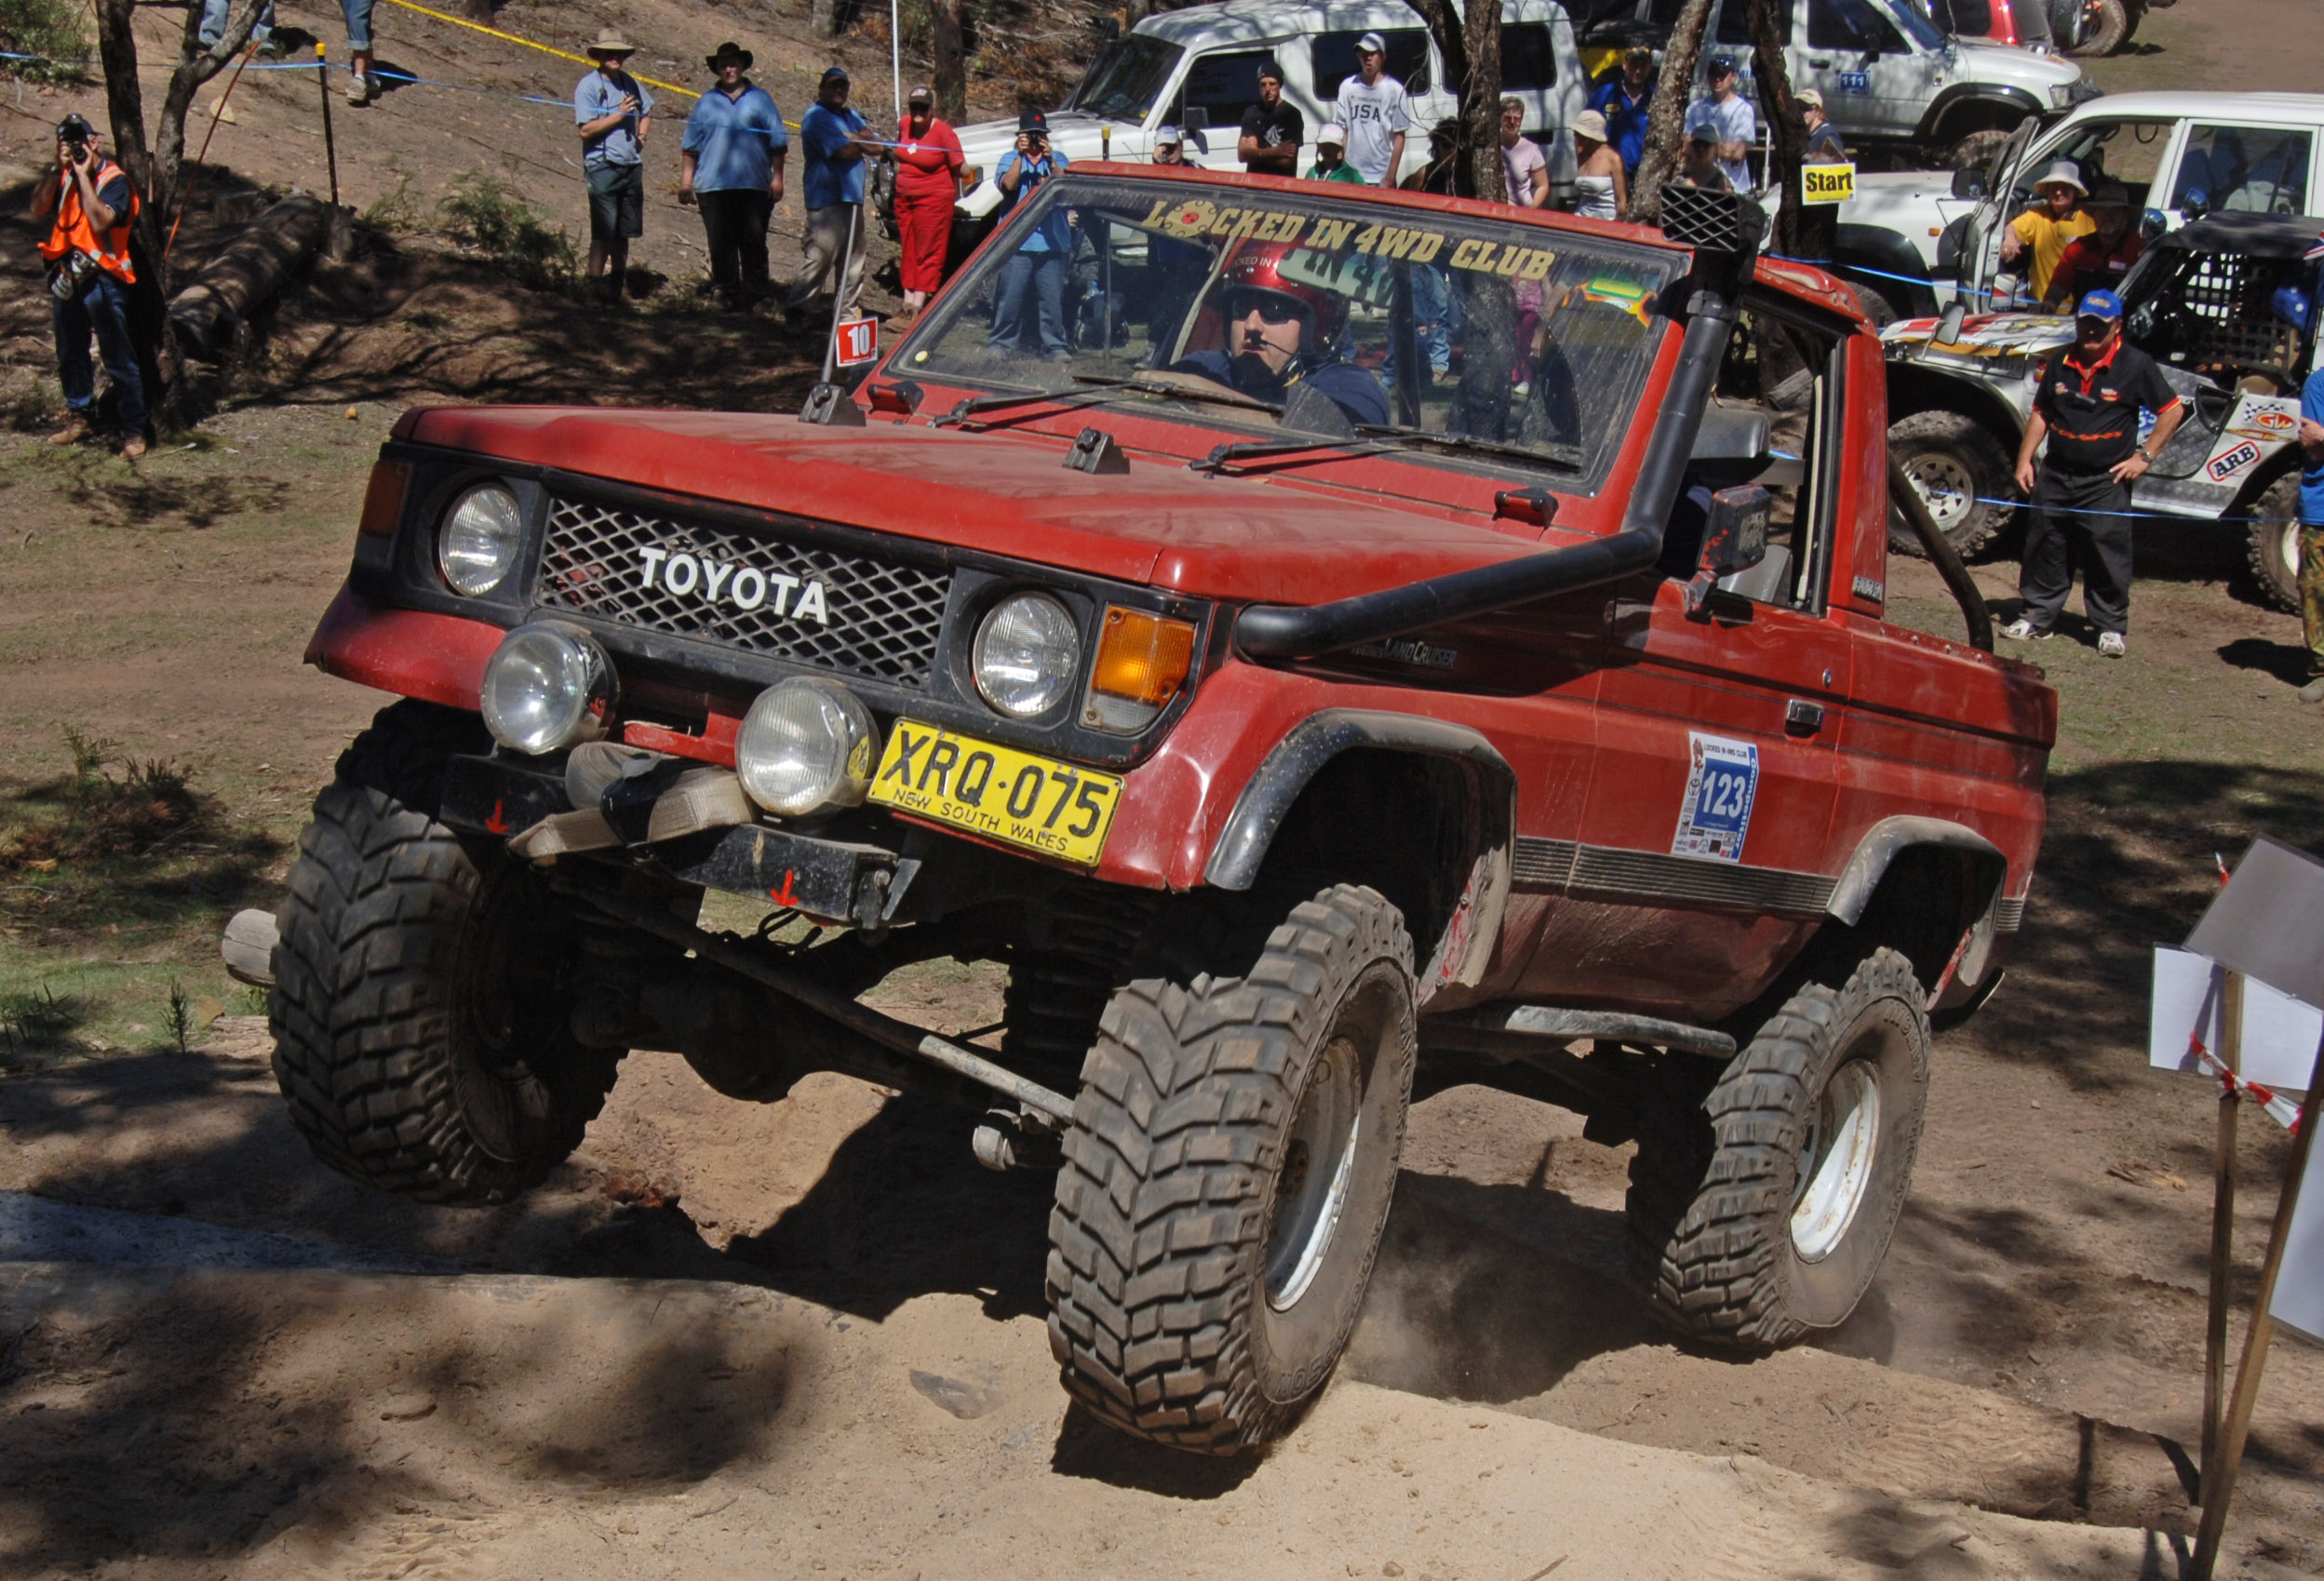 Toyota Land Cruiser Wiki >> File:Land Cruiser 70-series bundera 3.jpg - Wikimedia Commons